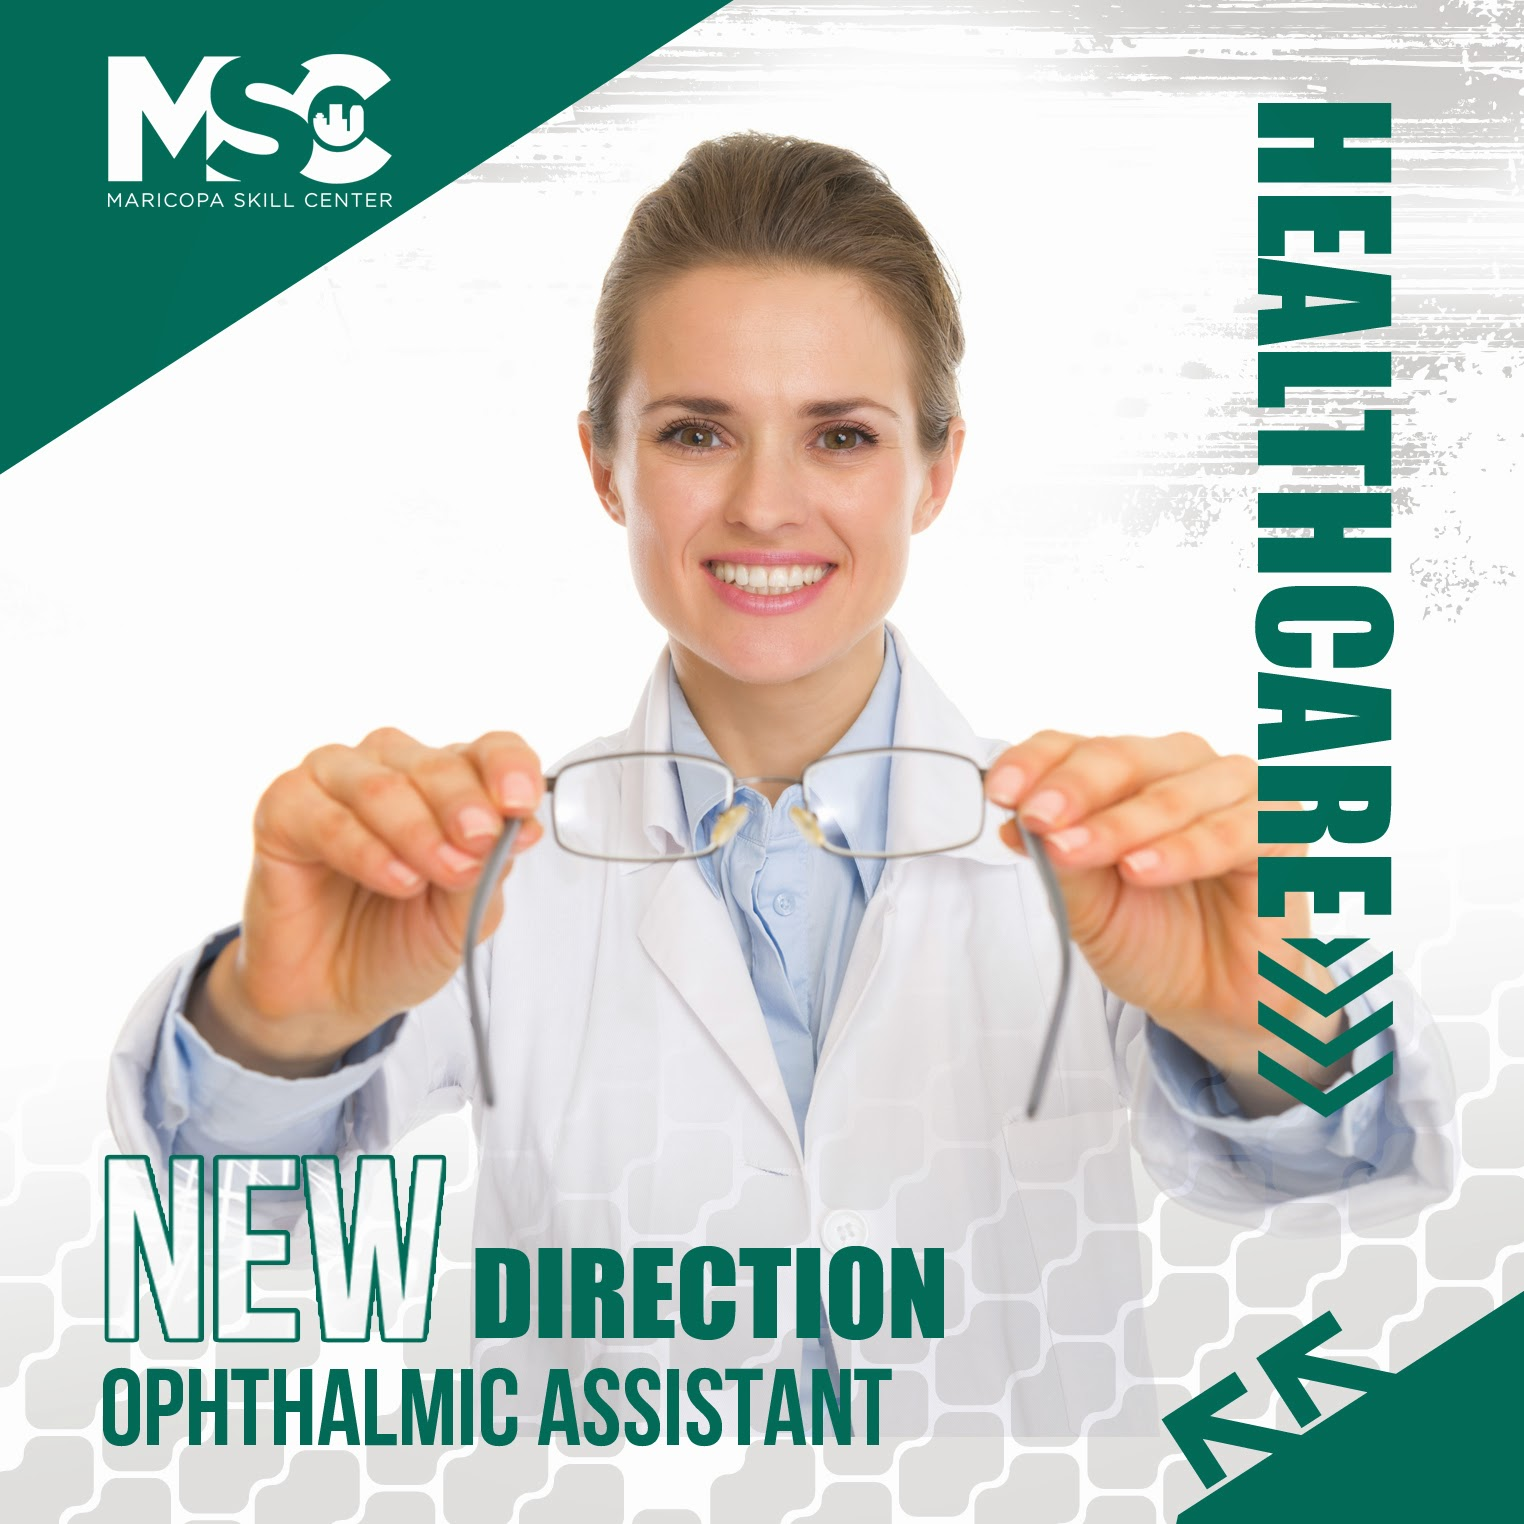 Maricopa Skill Center Take a New Direction with MSCs Ophthalmic – Ophthalmologist Assistant